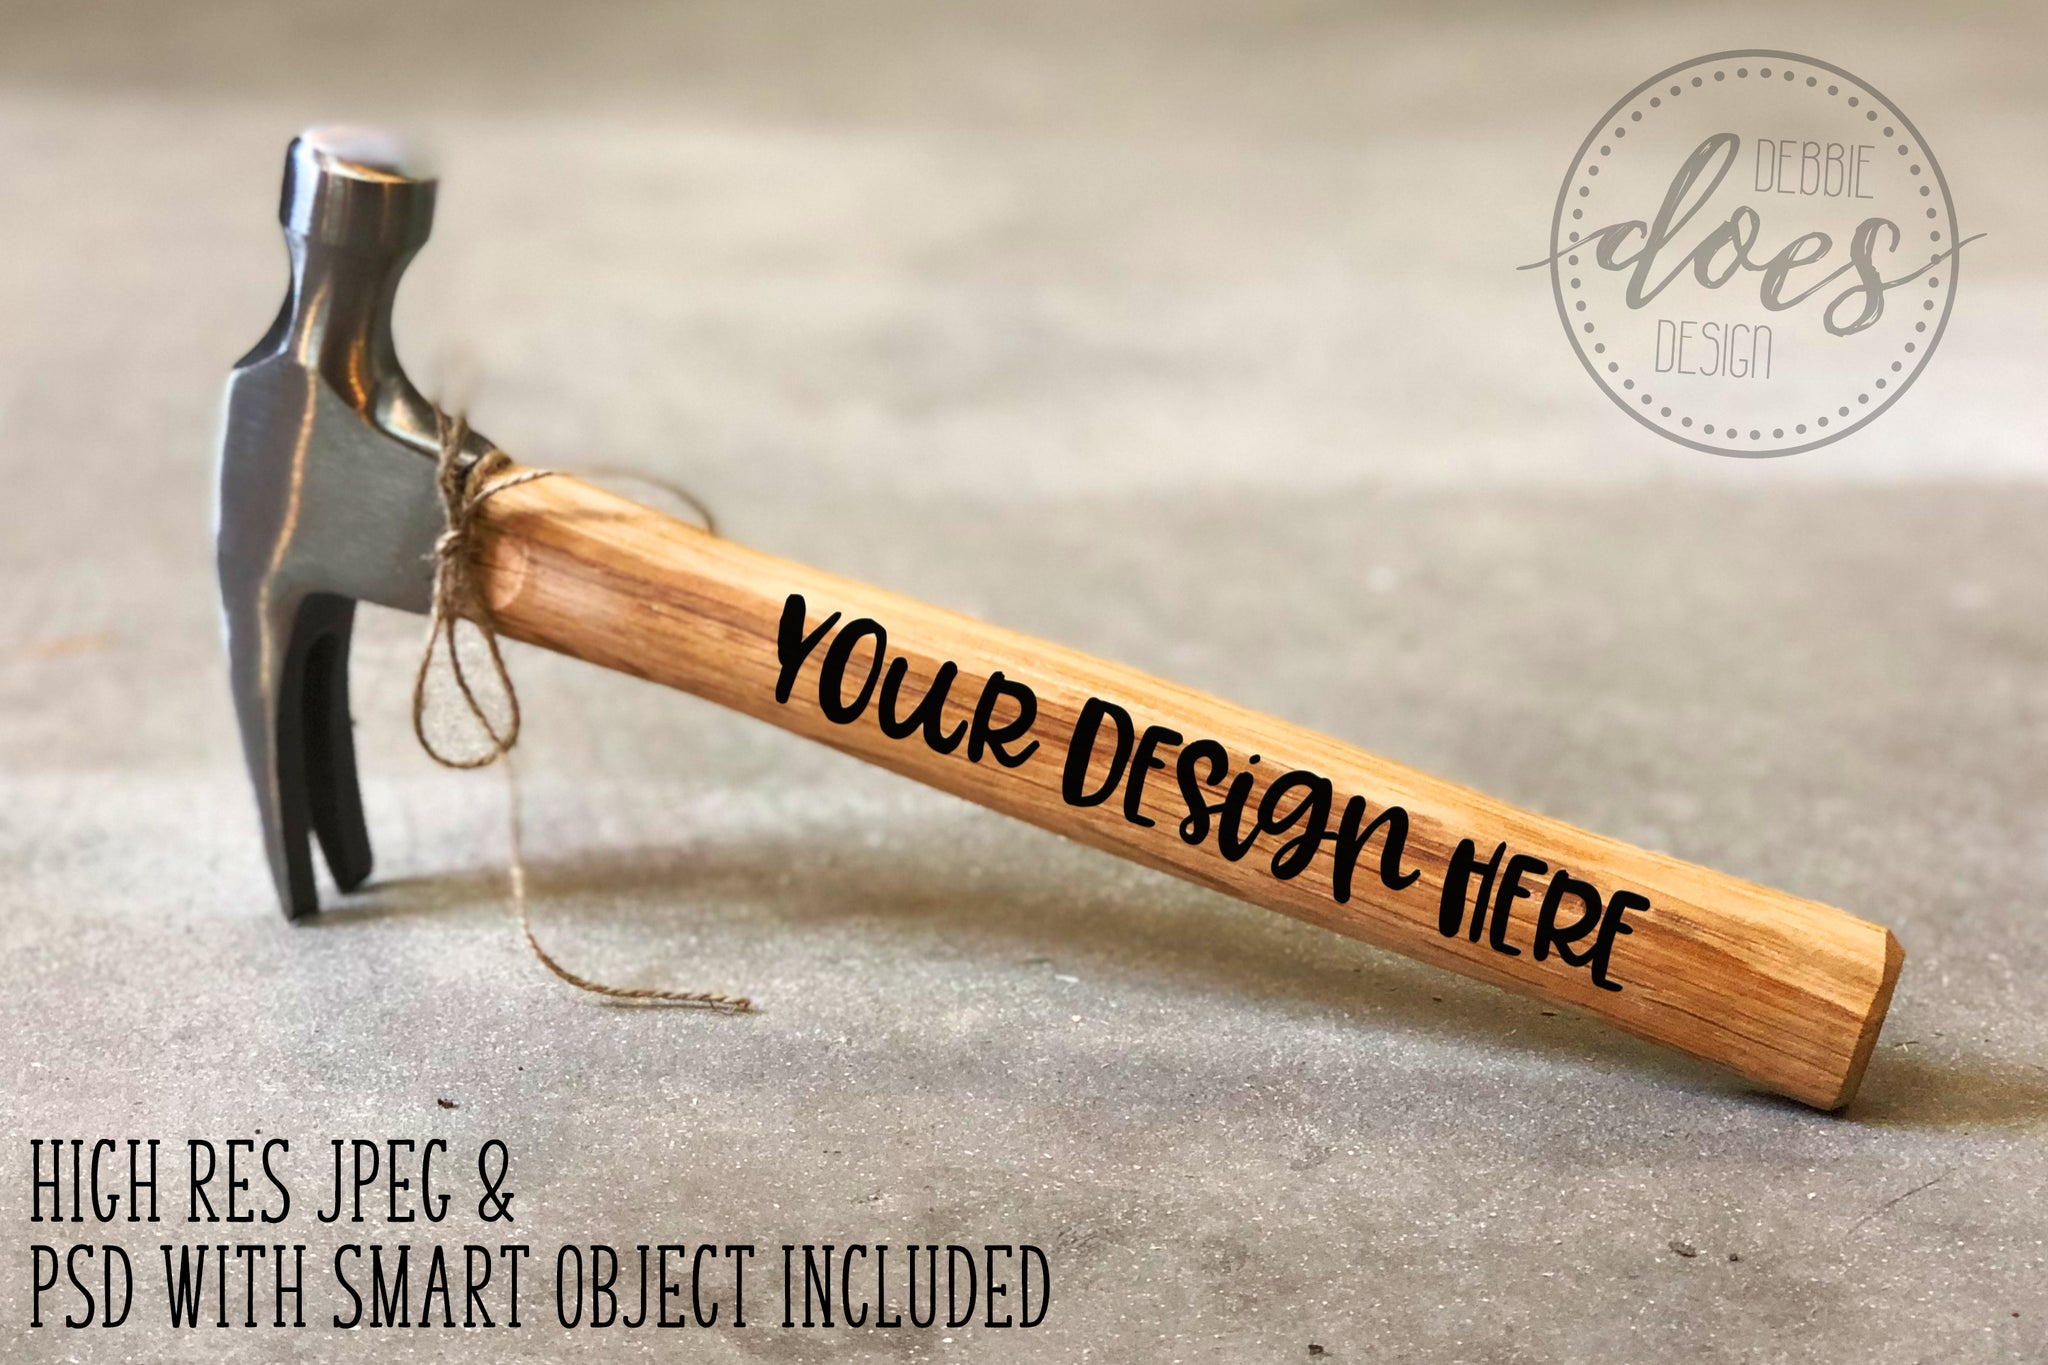 Wood Handled Hammer 1 | Hammer Mockup with Smart Object